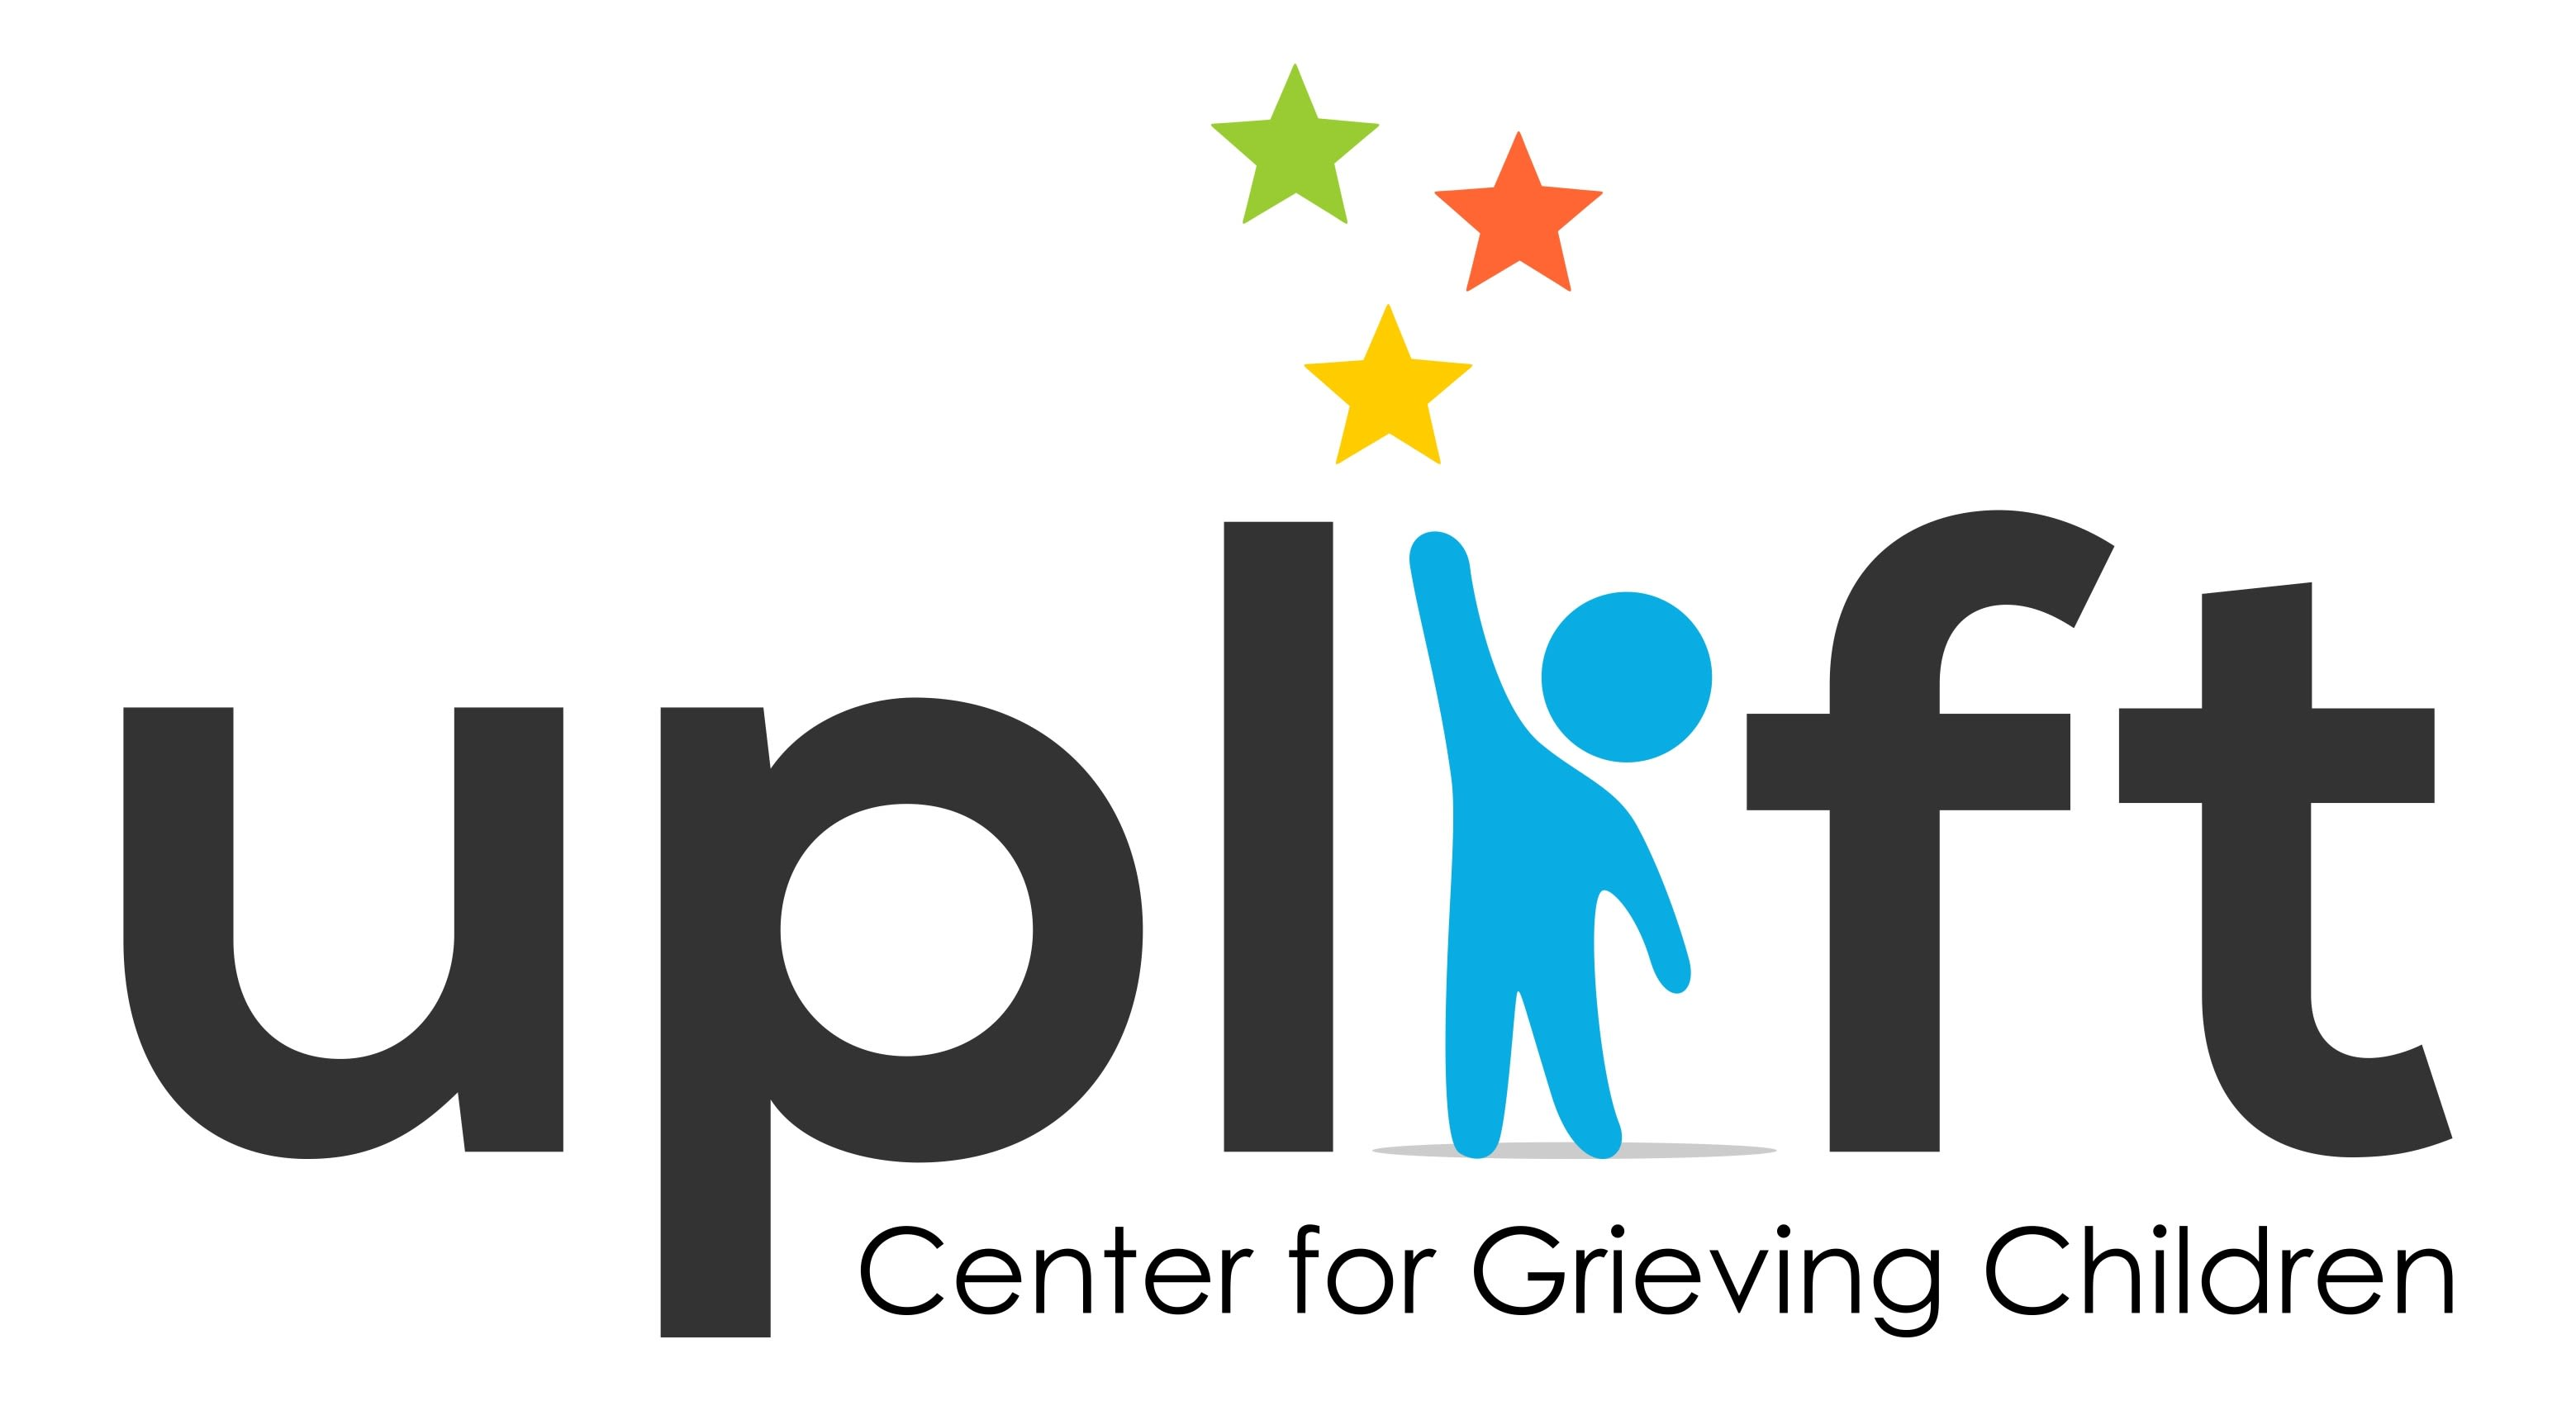 Uplift Center for Grieving Children's #upliftathome